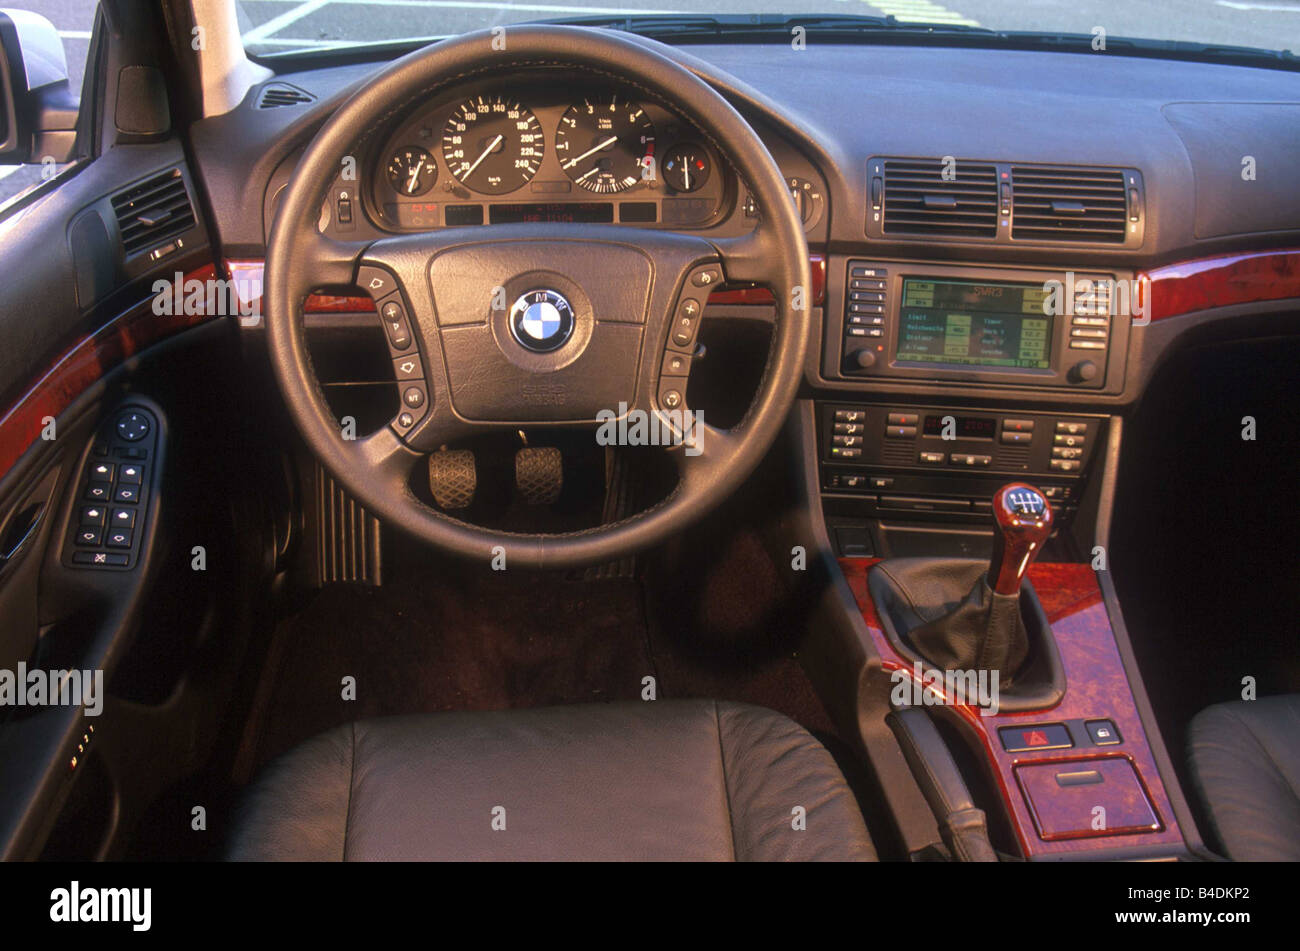 Car bmw 525i touring hatchback upper middle sized model year car bmw 525i touring hatchback upper middle sized model year 2000 silver interior view interior view cockpit techniqu sciox Gallery